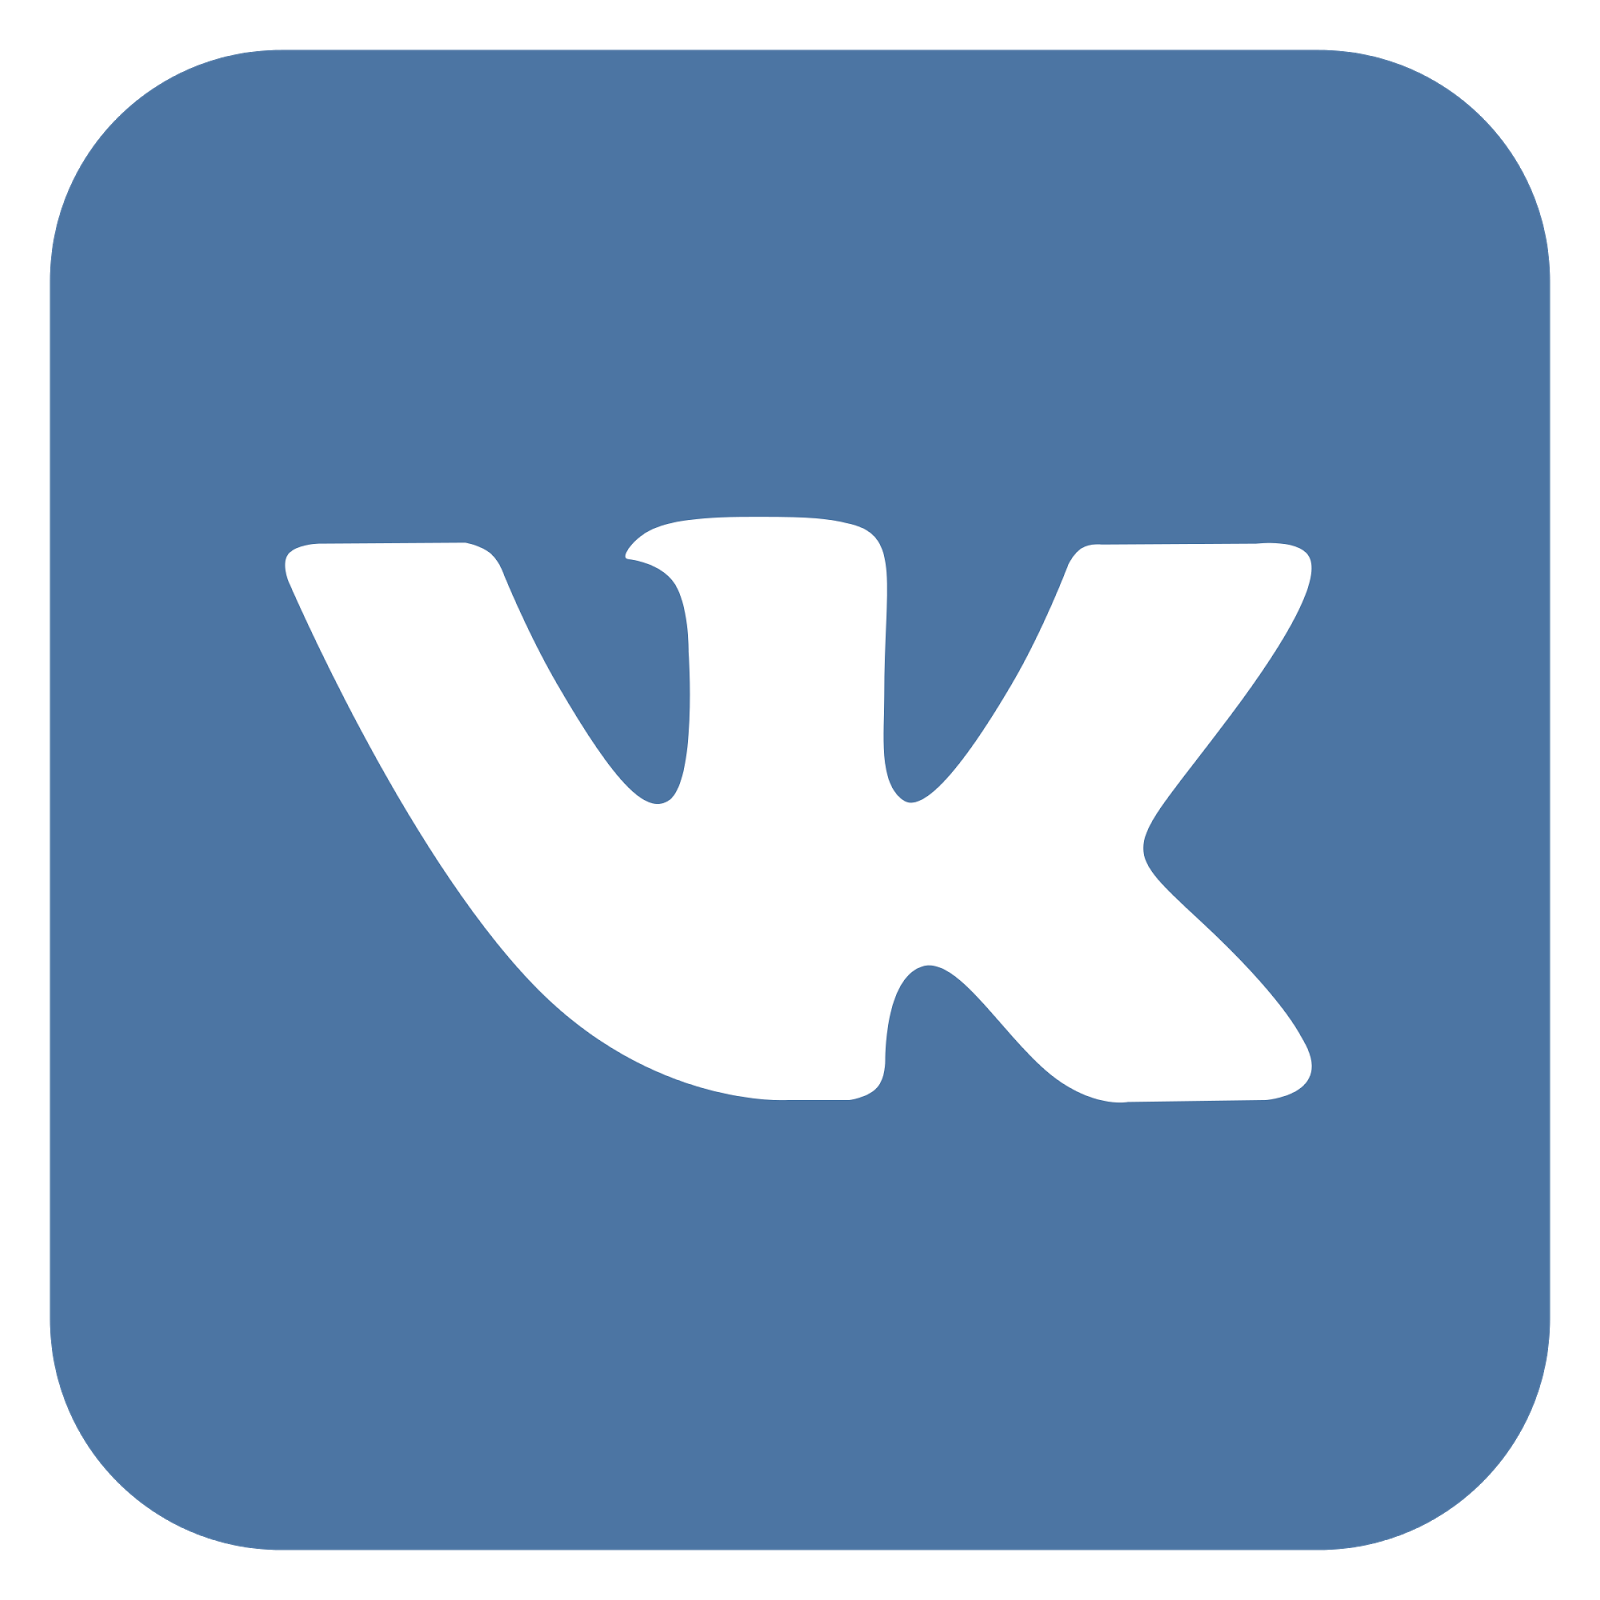 vk.com